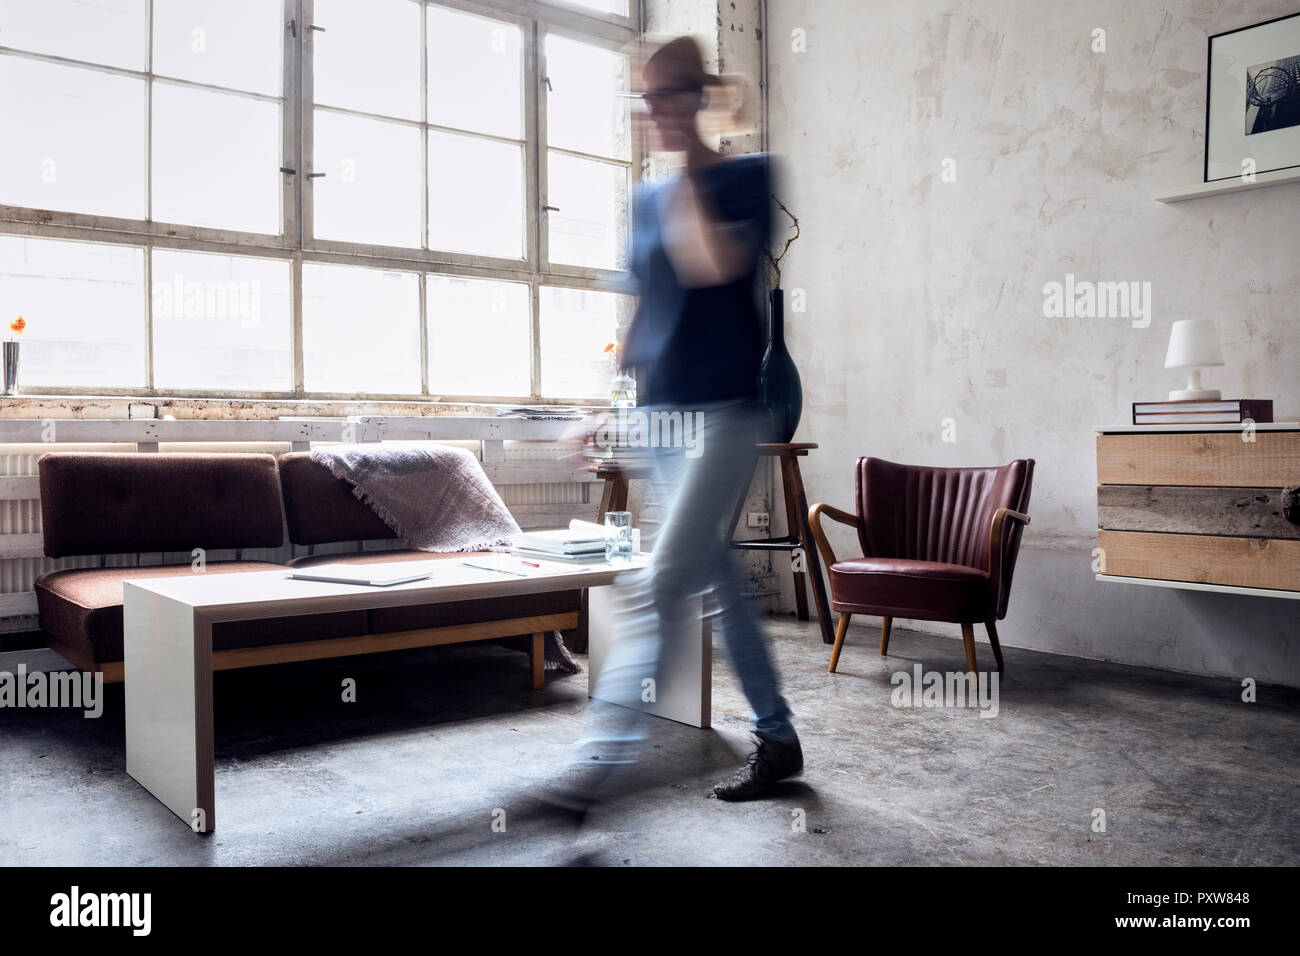 Woman walking in a loft - Stock Image